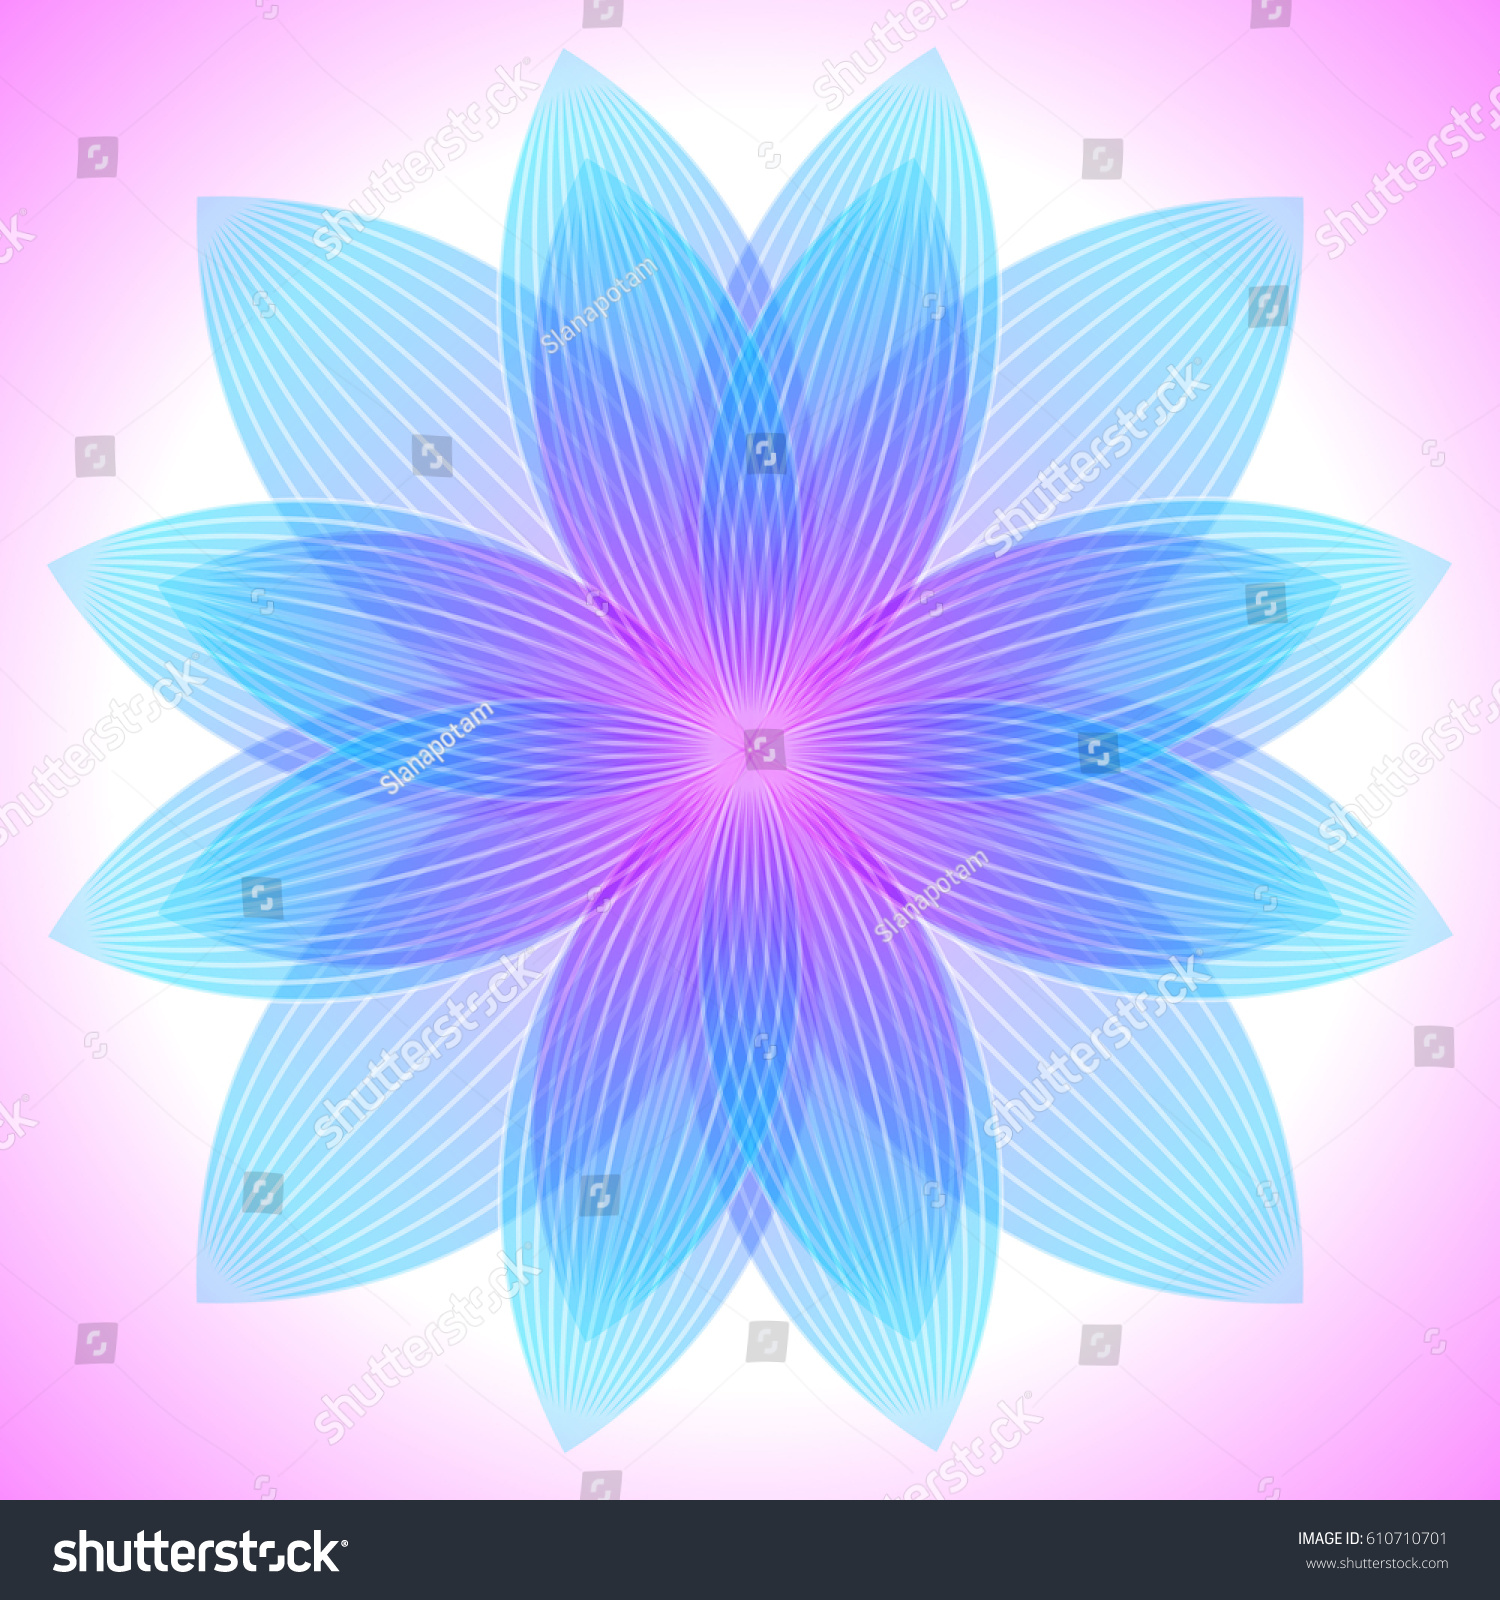 Abstract Pink Blue Flower Geometric Shapes Stock Vector 2018